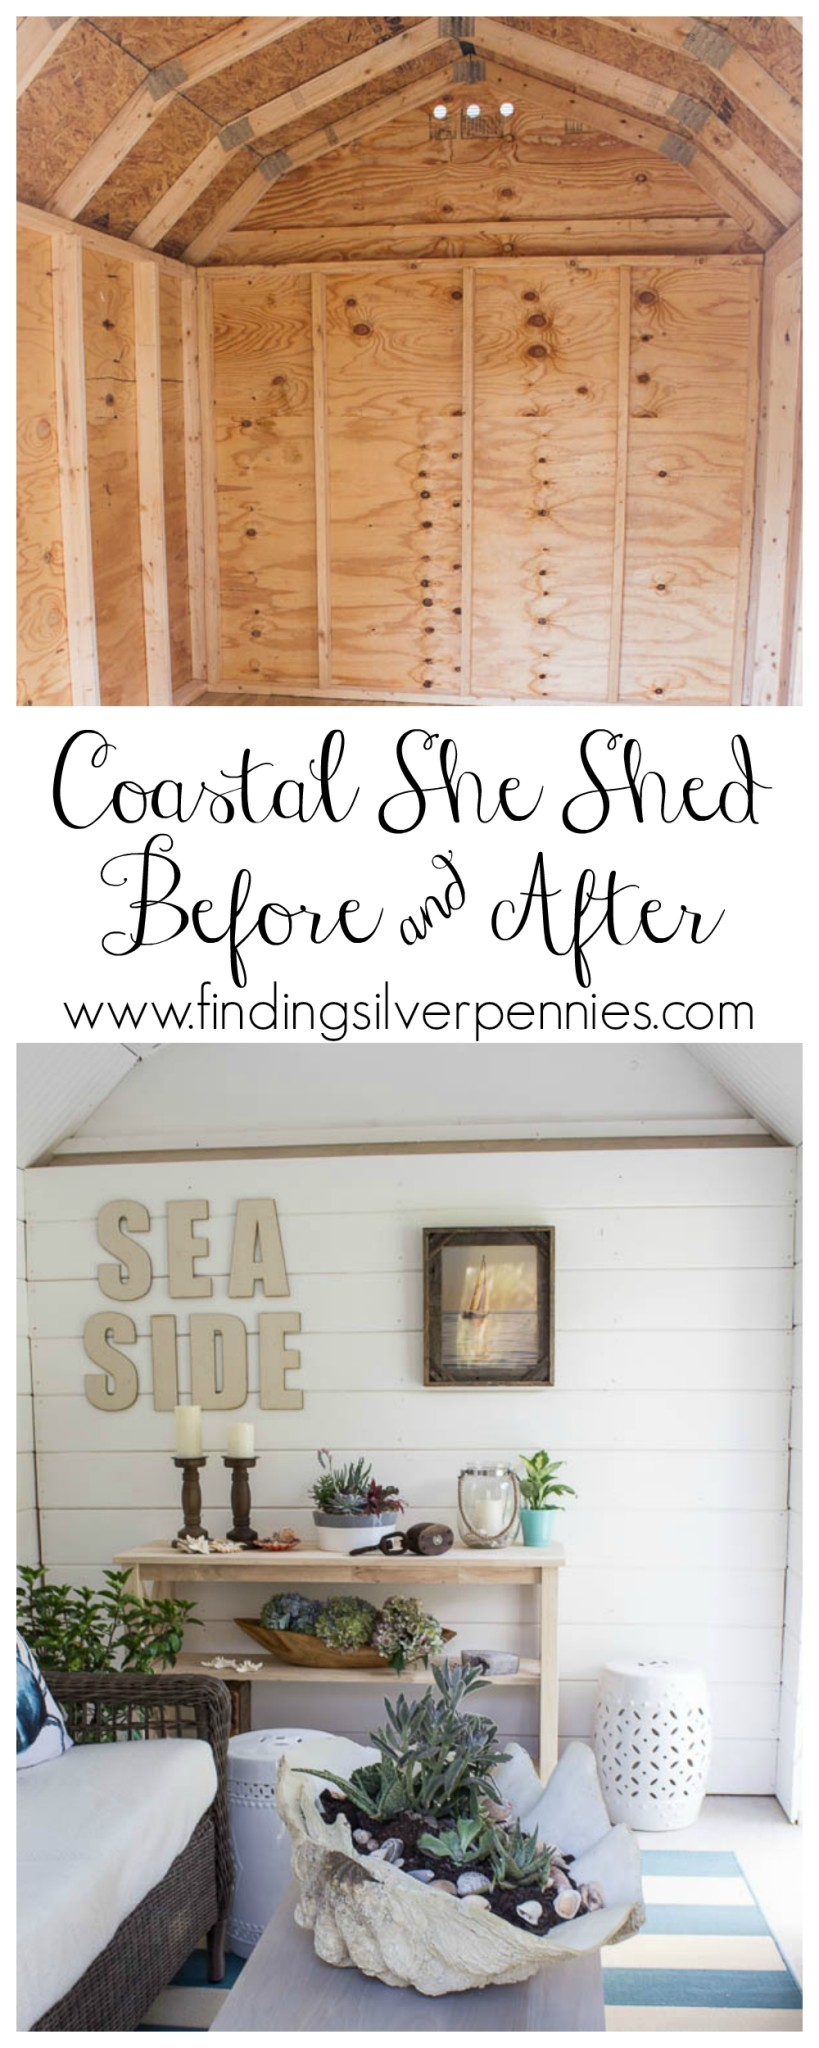 Interior Shed Decorating Ideas: My Coastal She Shed Reveal And Sources